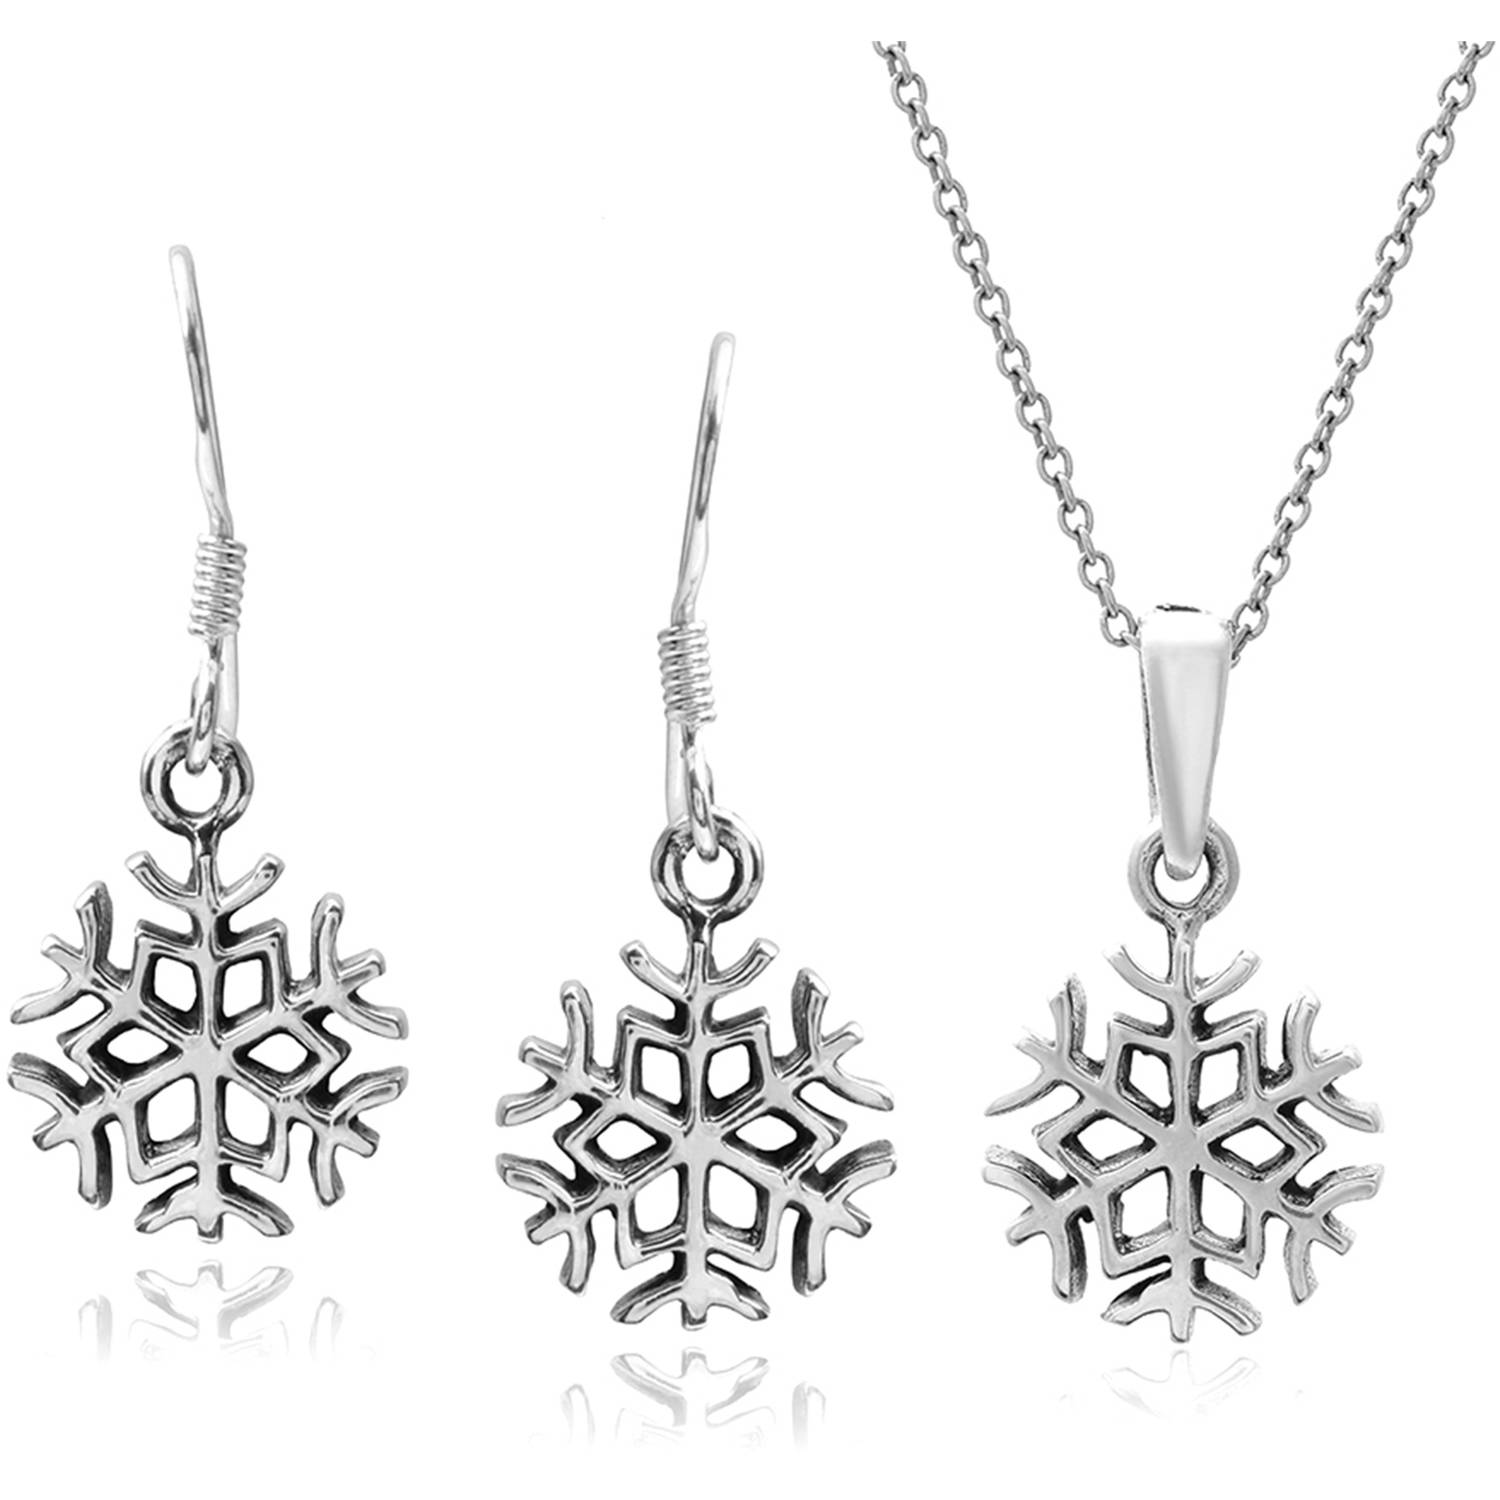 Brinley Co. Women's Sterling Silver Snowflake Pendant and Earring Set